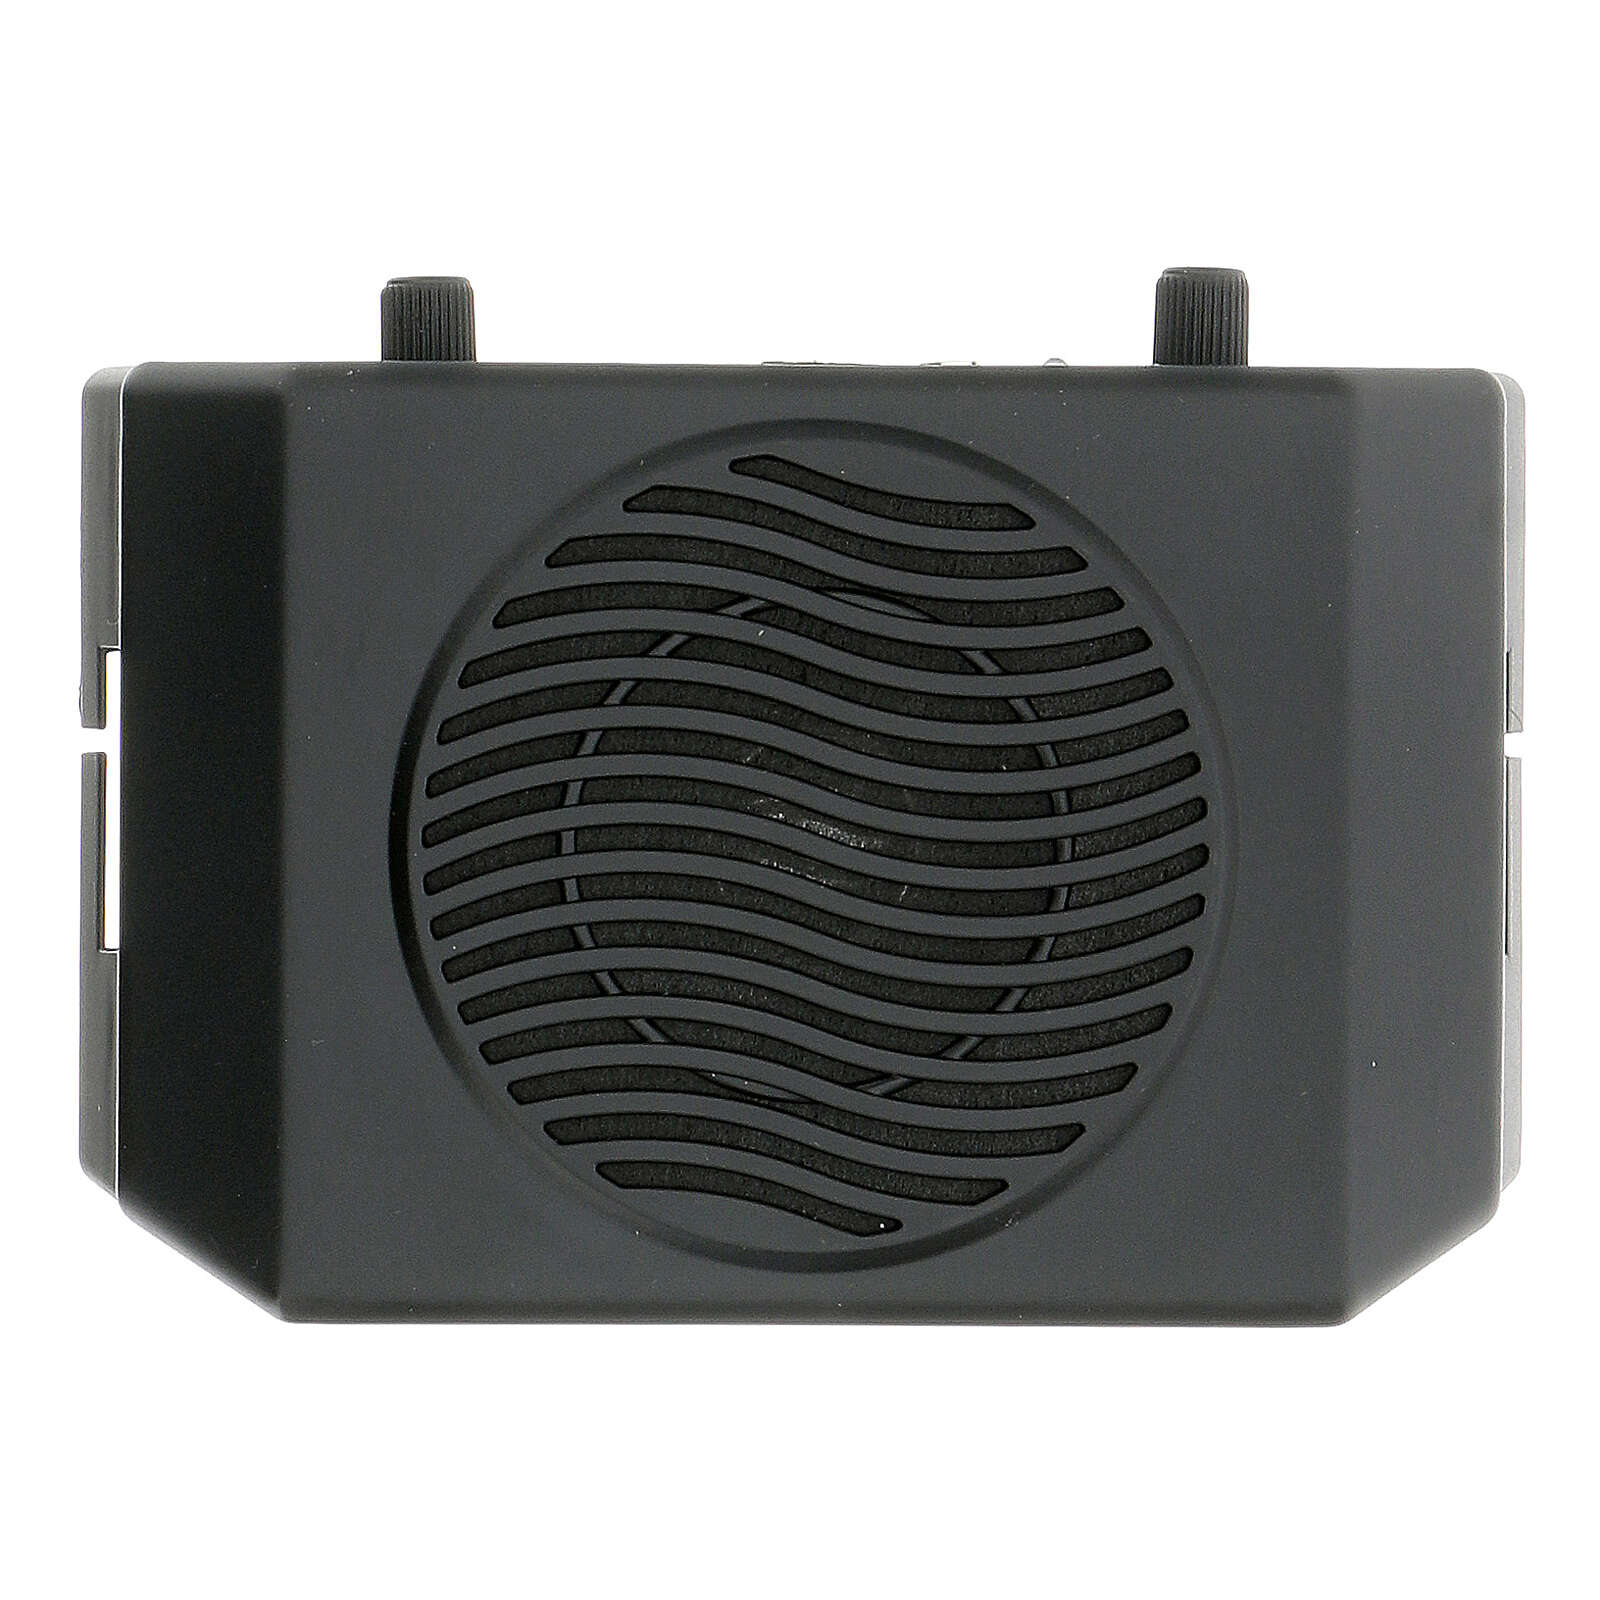 Portable amplifier for celebrations 3